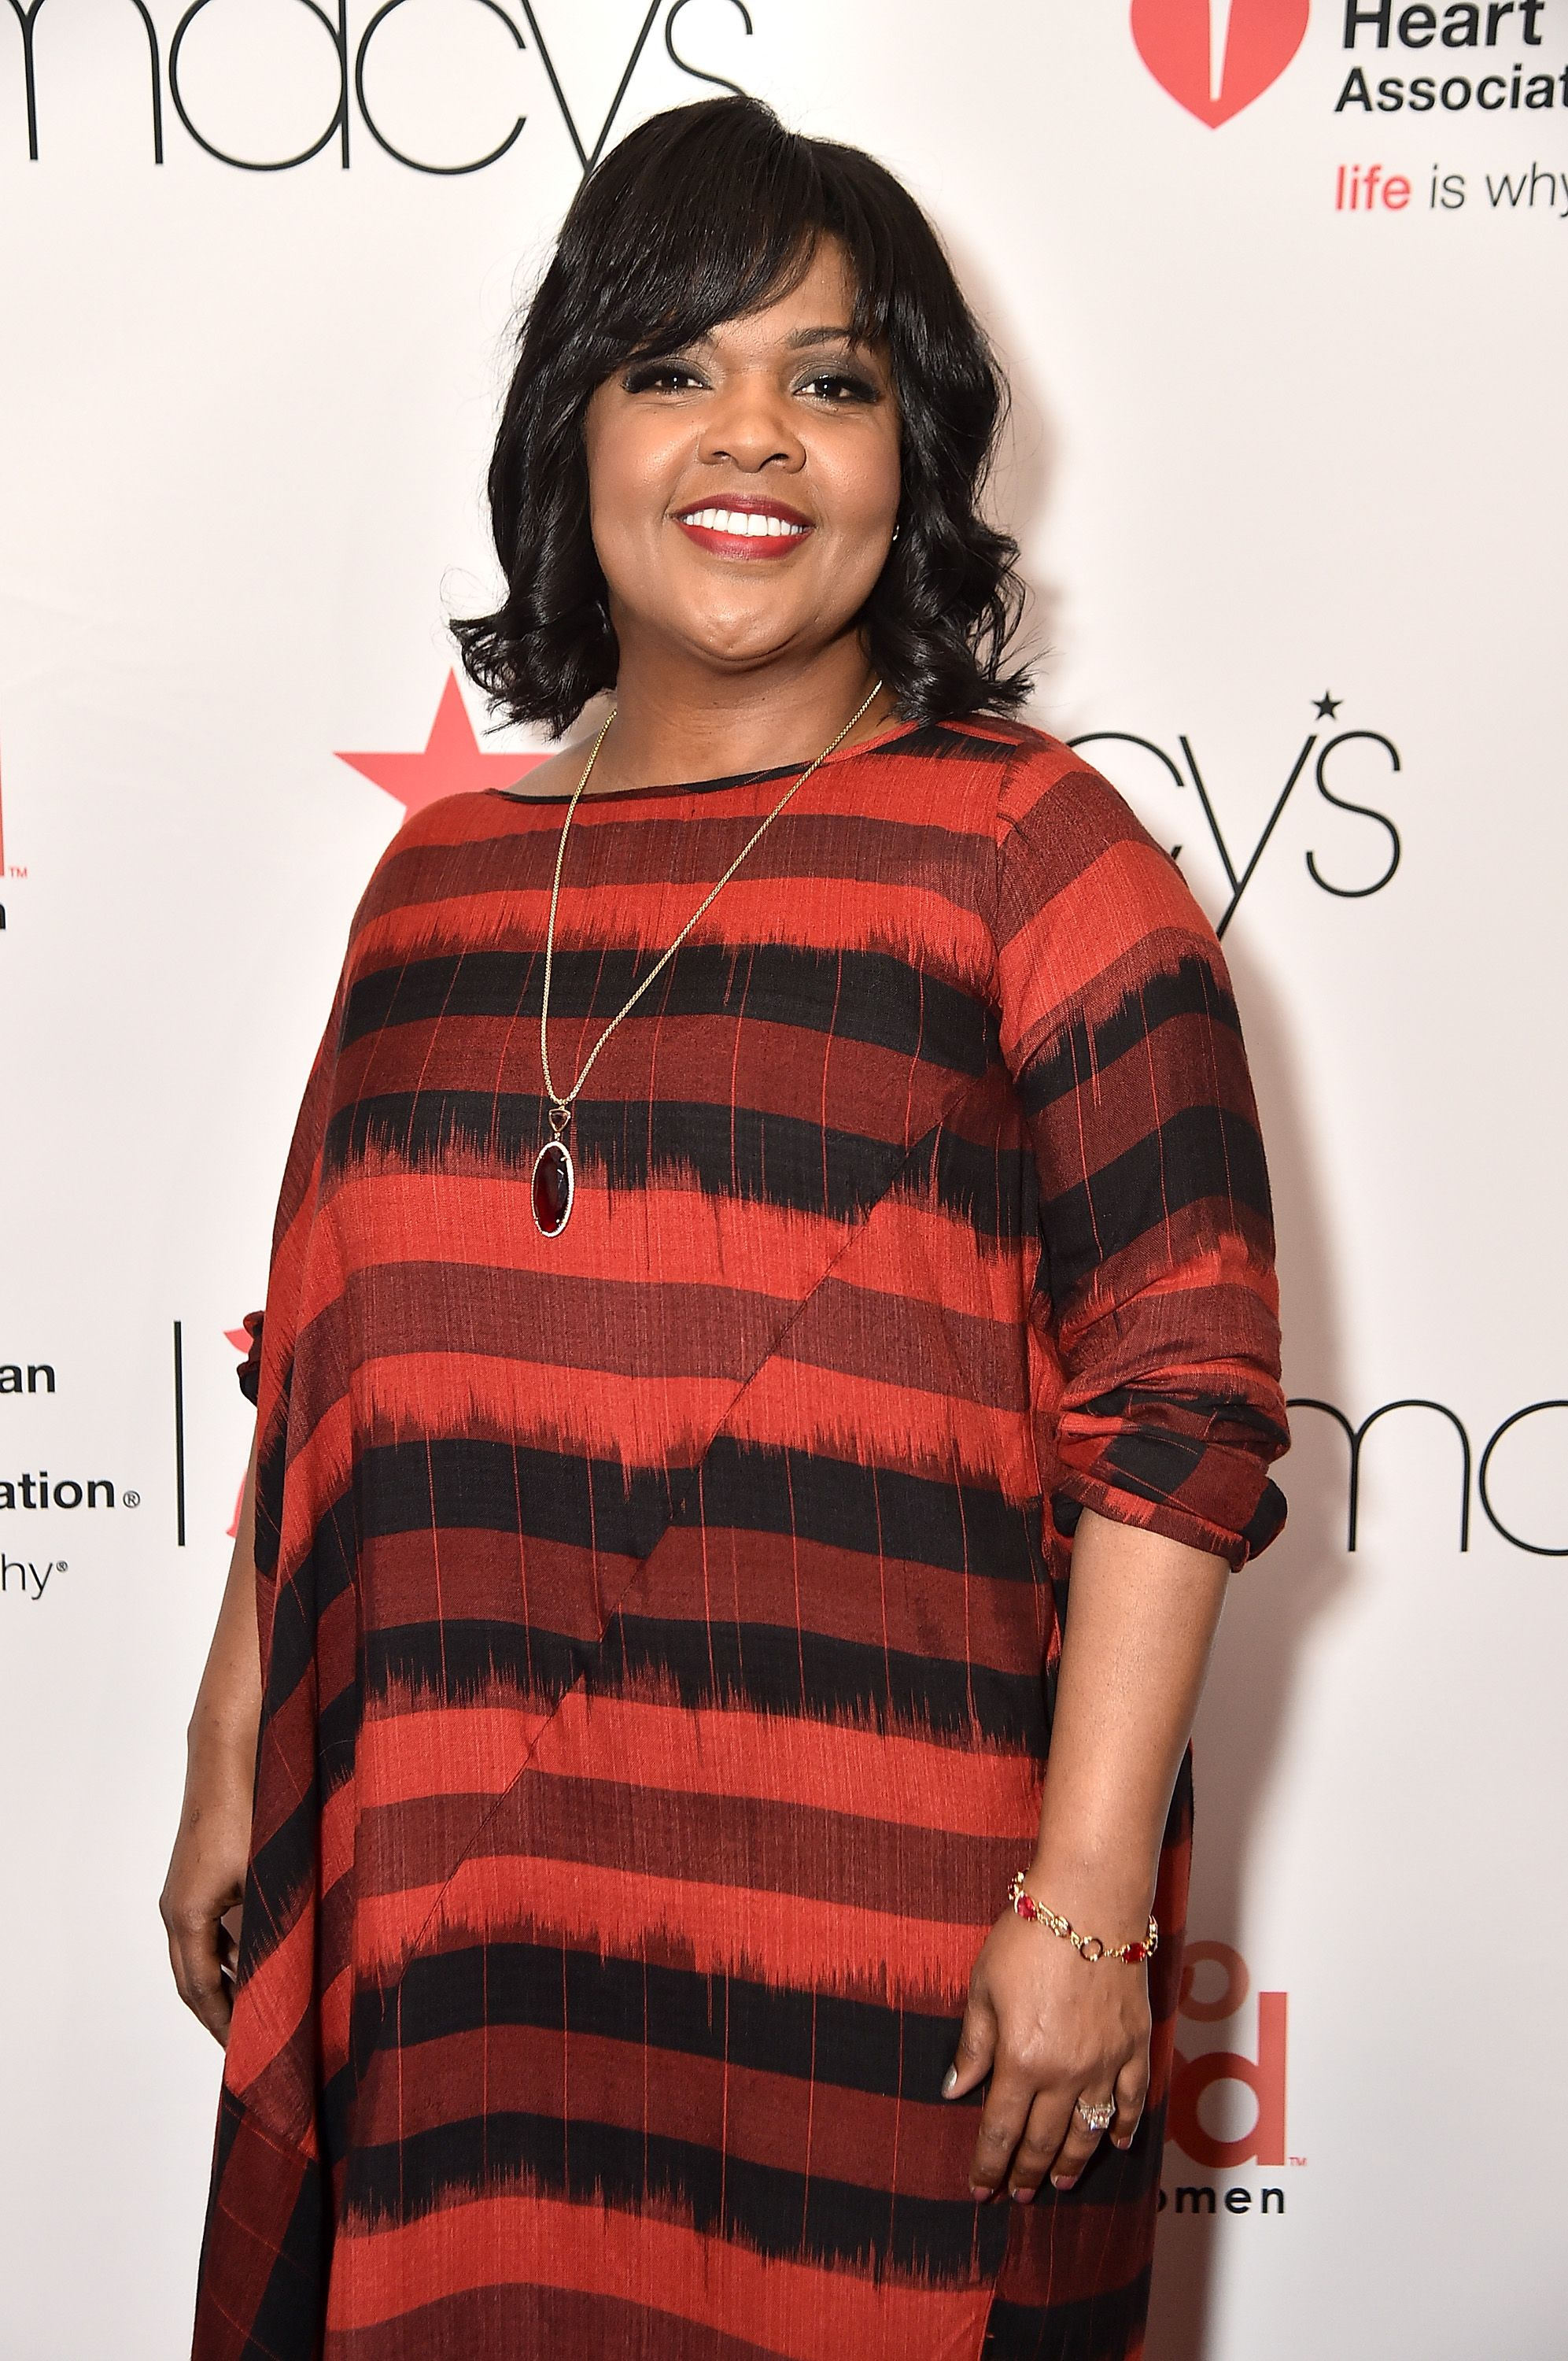 CeCe Winans at the American Heart Association's Go Red For Women Red Dress Collection 2018 in New York City | Photo: Getty Images